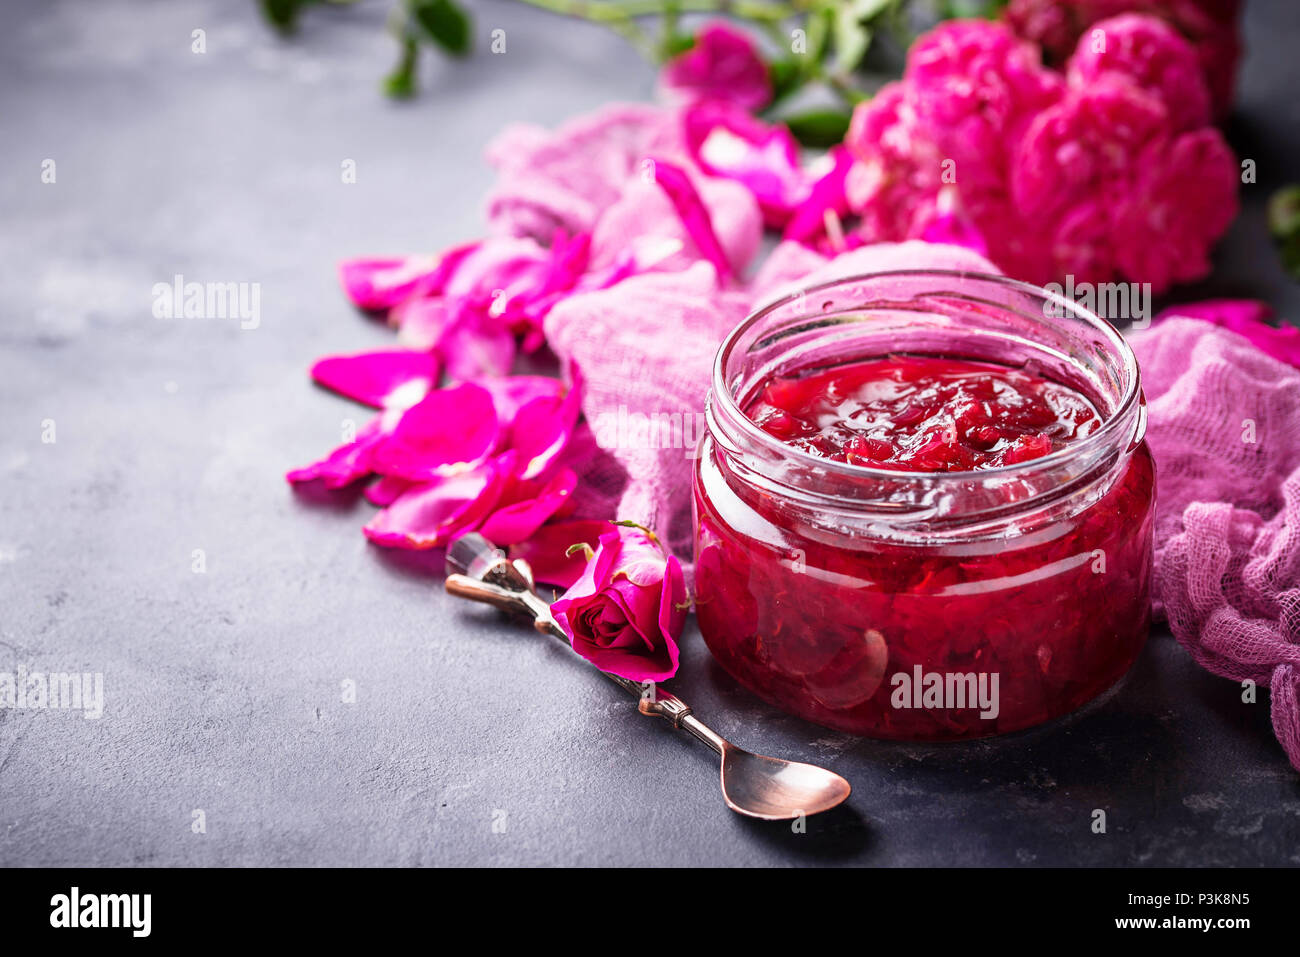 Homemade jam of rose petals  - Stock Image